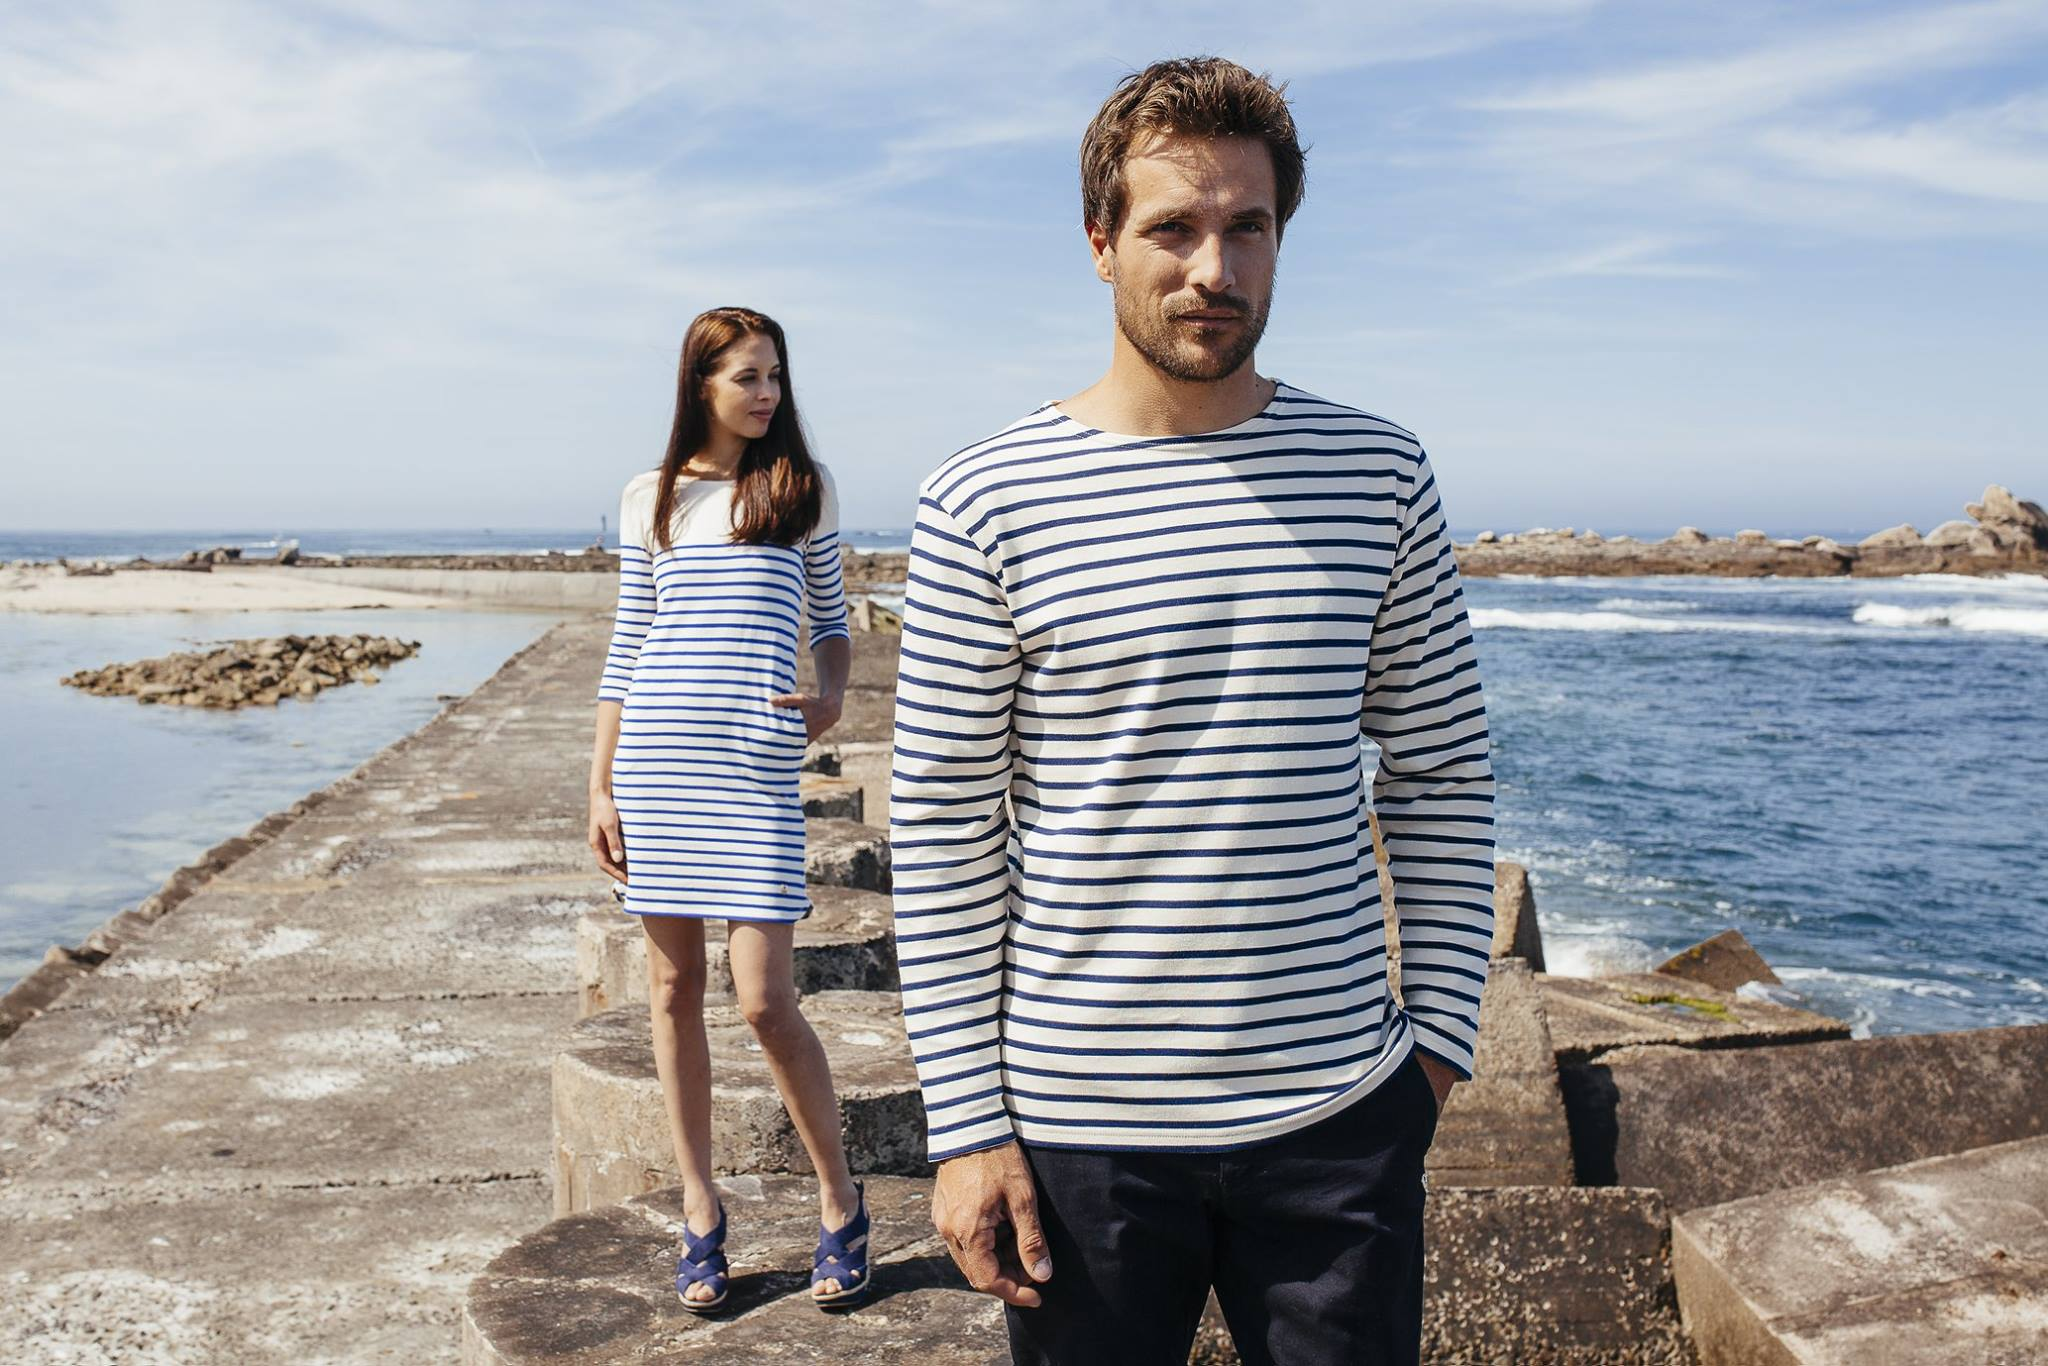 ARMOR LUX STRIPES FASHION GET STOCKED FRENCH BRAND